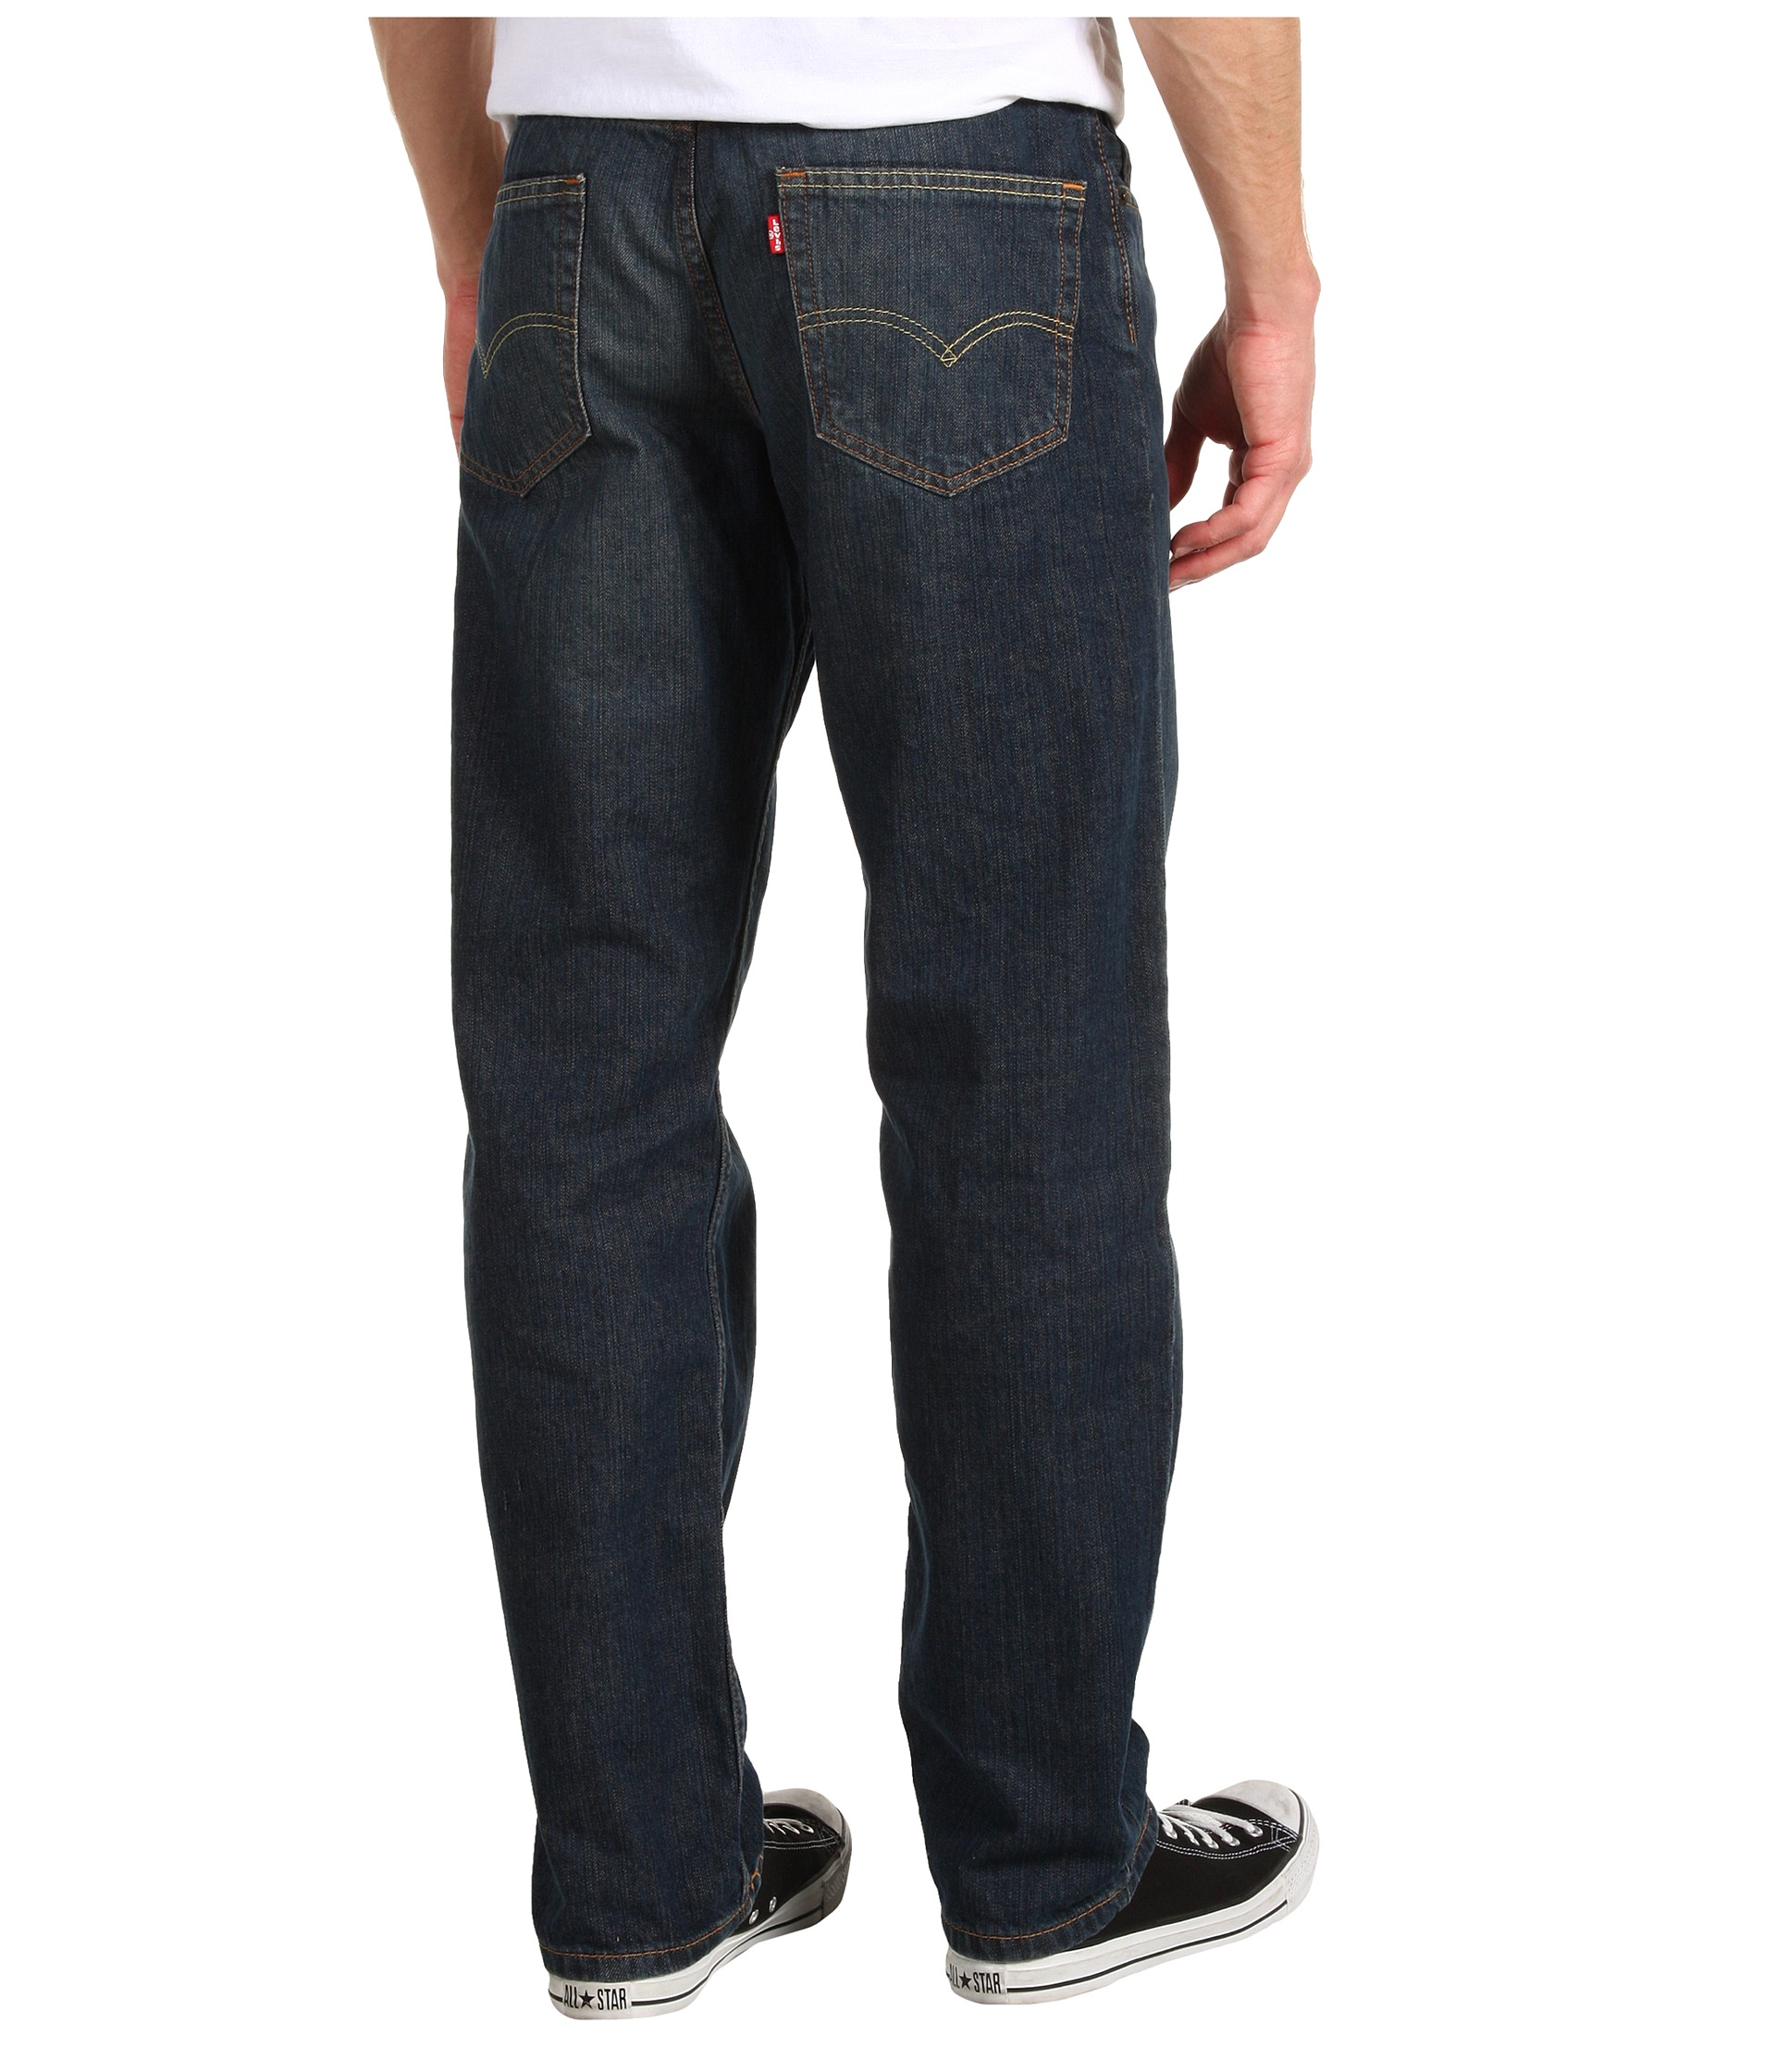 Different styles of men's jeans Whether for their durability or their casual style, the right cut plays a key role in your comfort. Some common styles include loose fit, straight cut, and skinny fit.